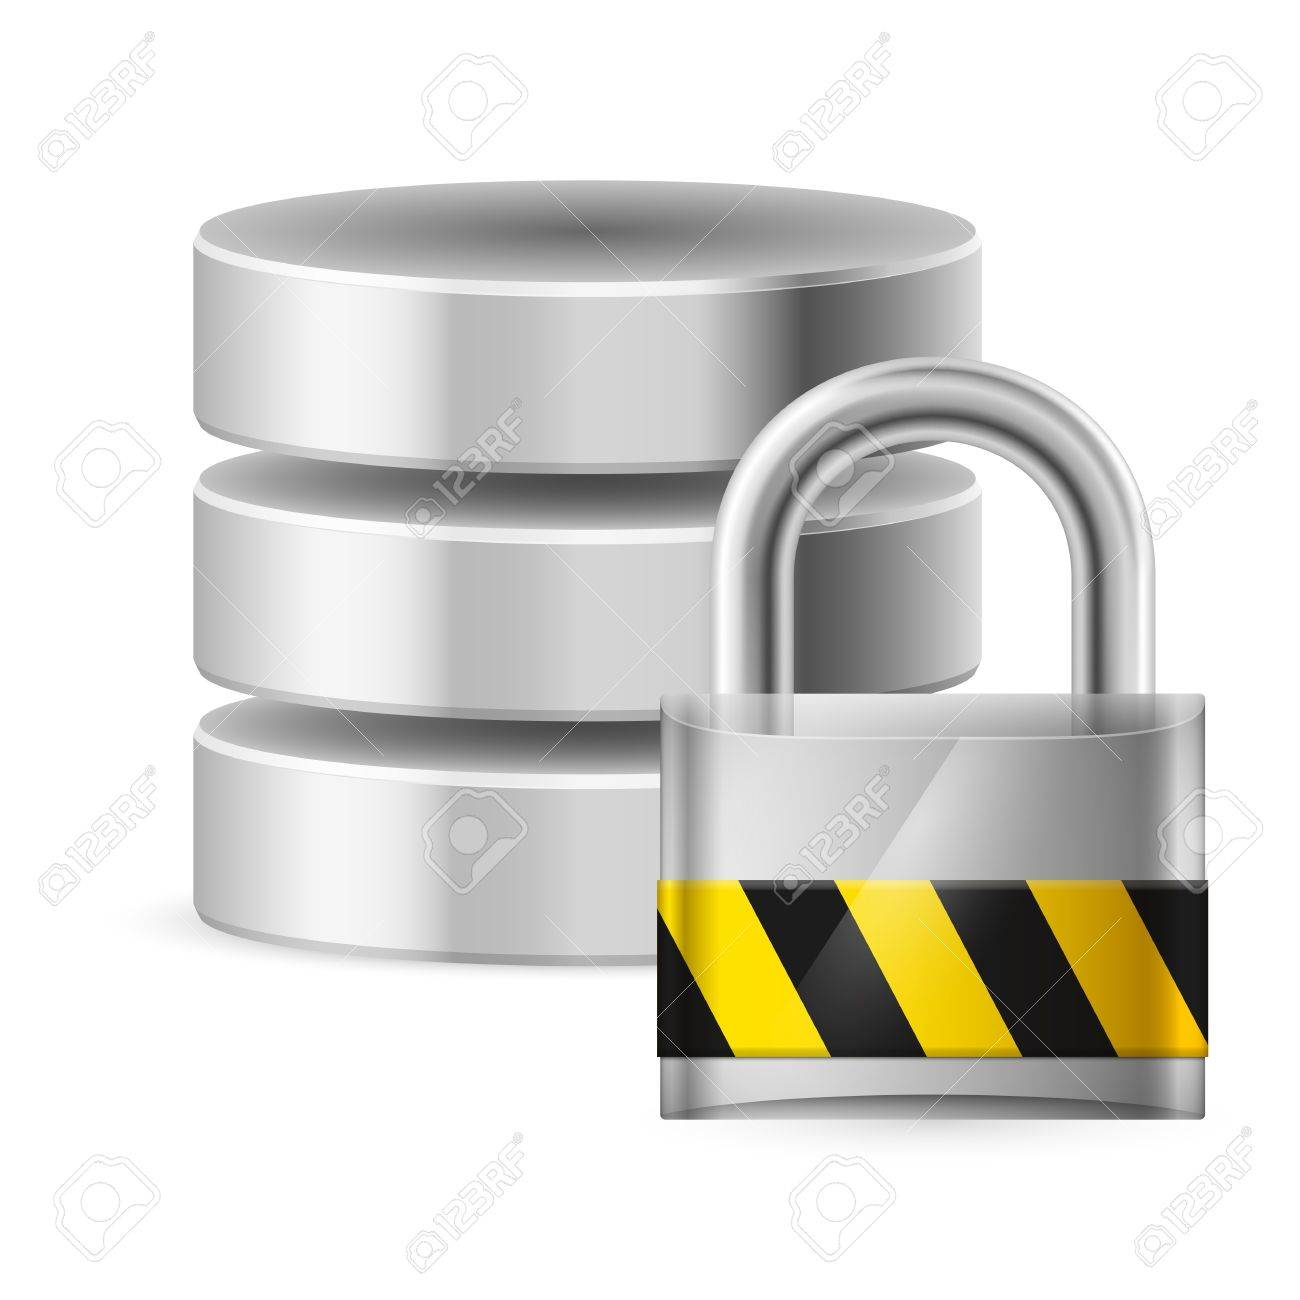 Database icon off. Illustration on white for design Stock Vector - 16976807